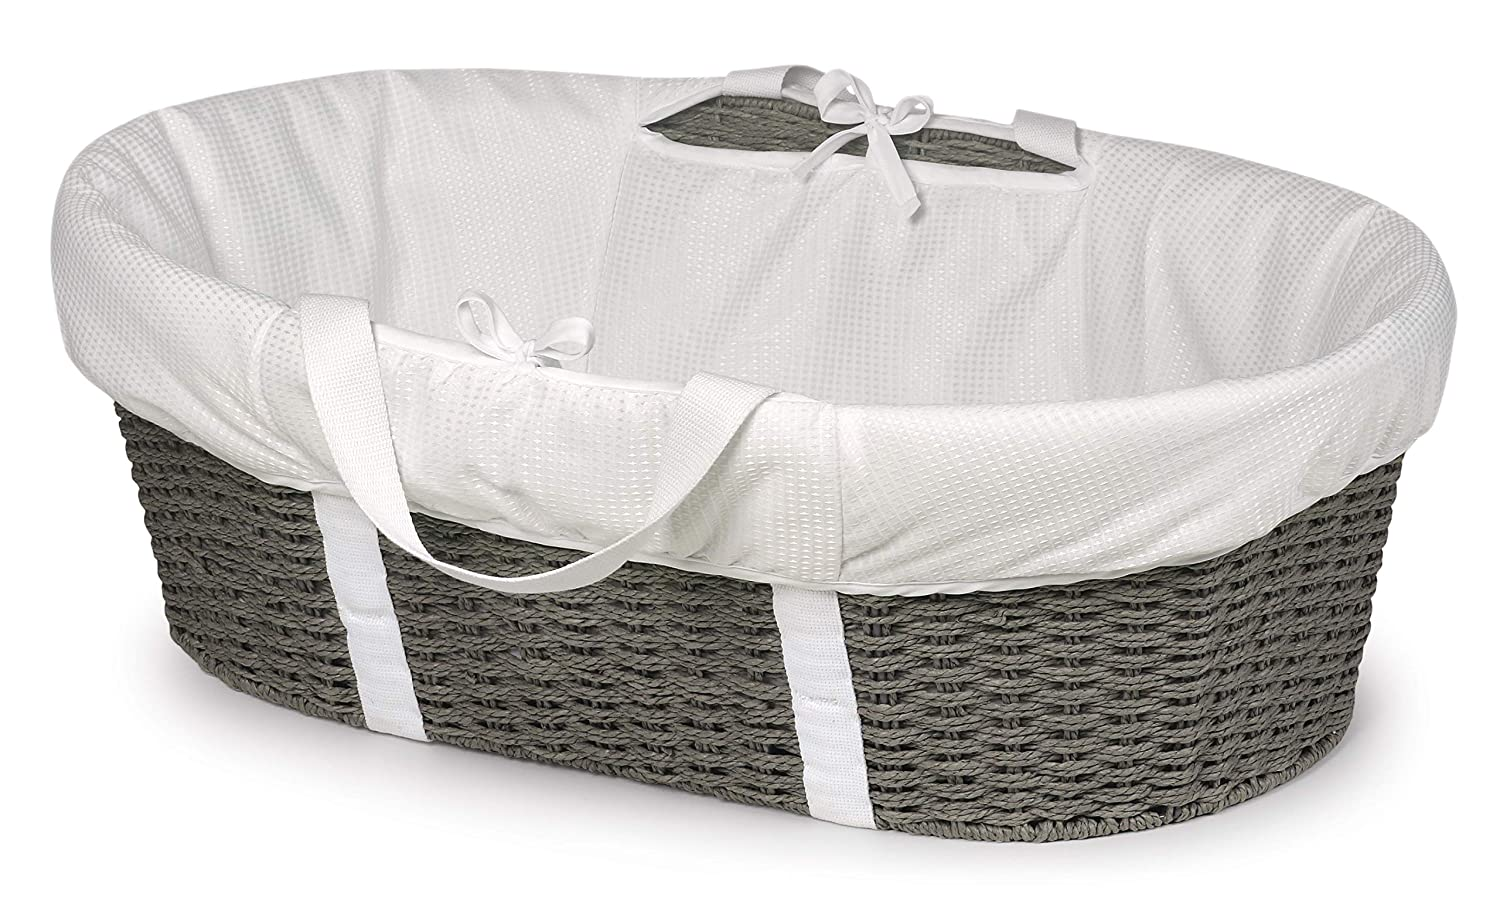 Top 10 Best Moses Baskets (2020 Reviews & Buying Guide) 7